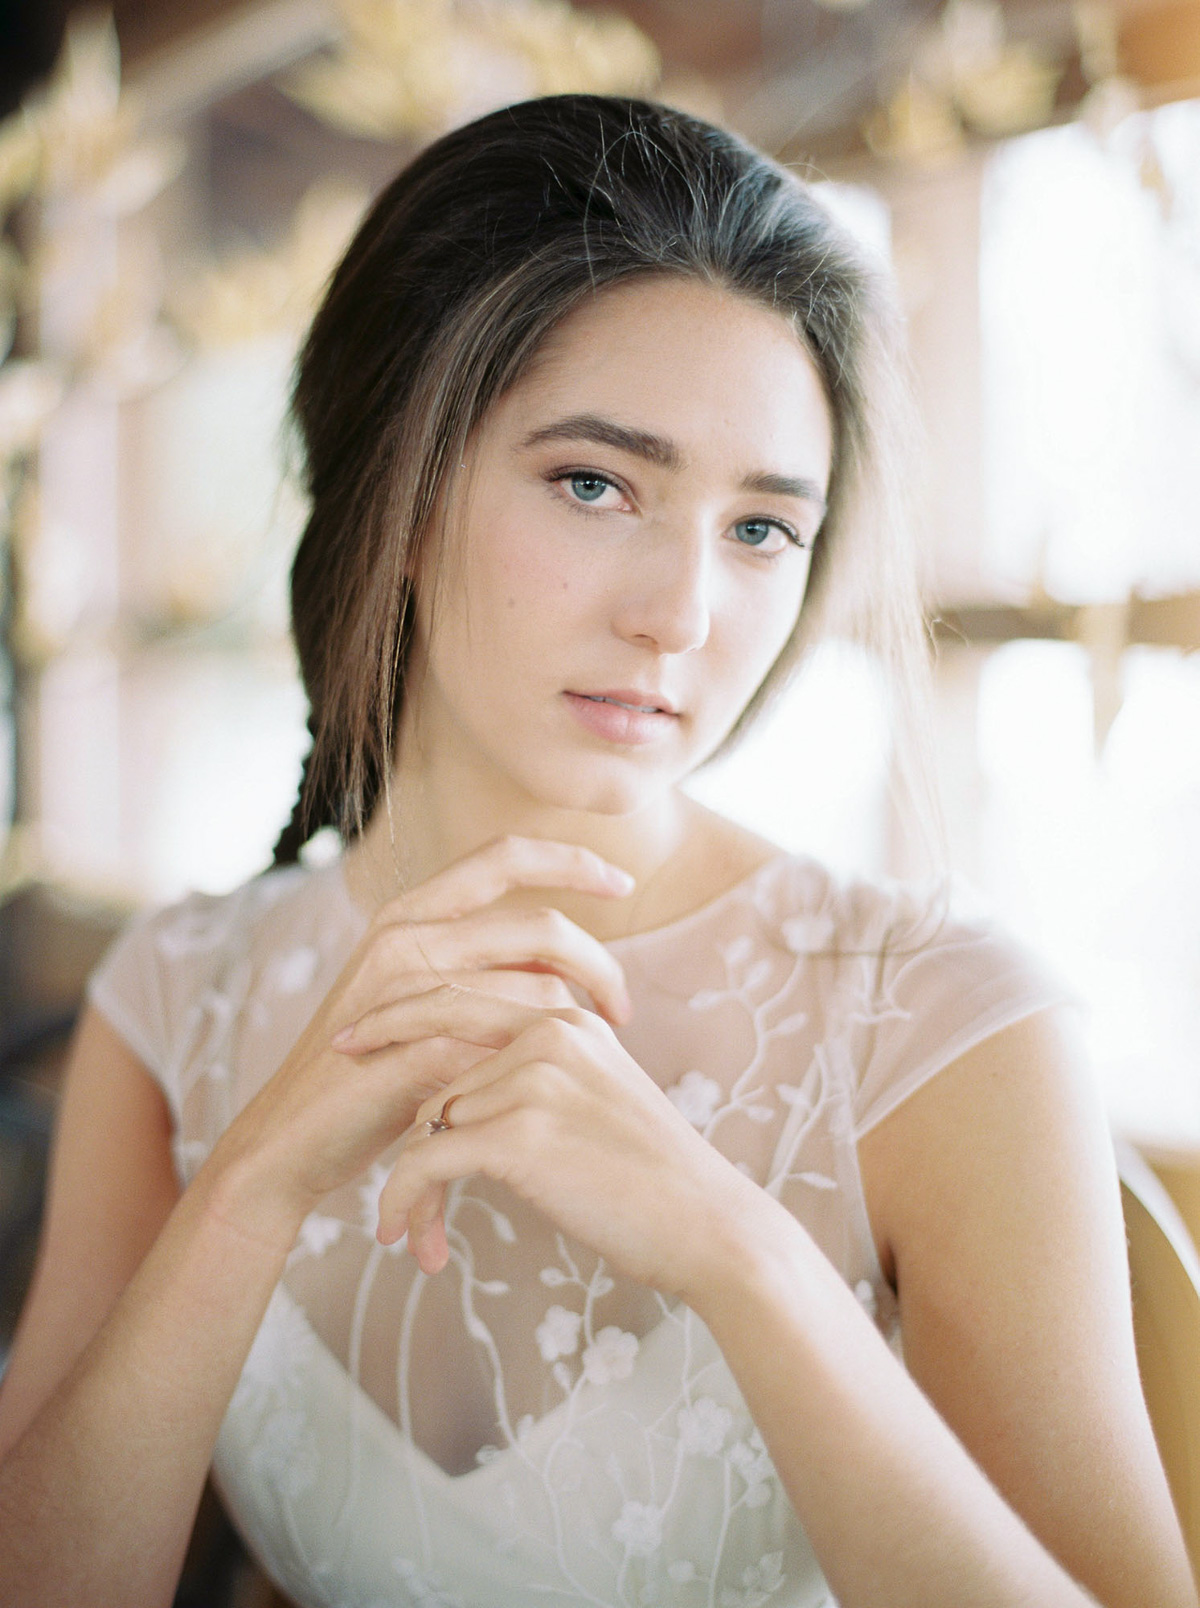 will-reid-photo-vineyard-bride-swish-list-kurtz-orchards-market-niagara-on-the-lake-wedding-editorial-21.jpg